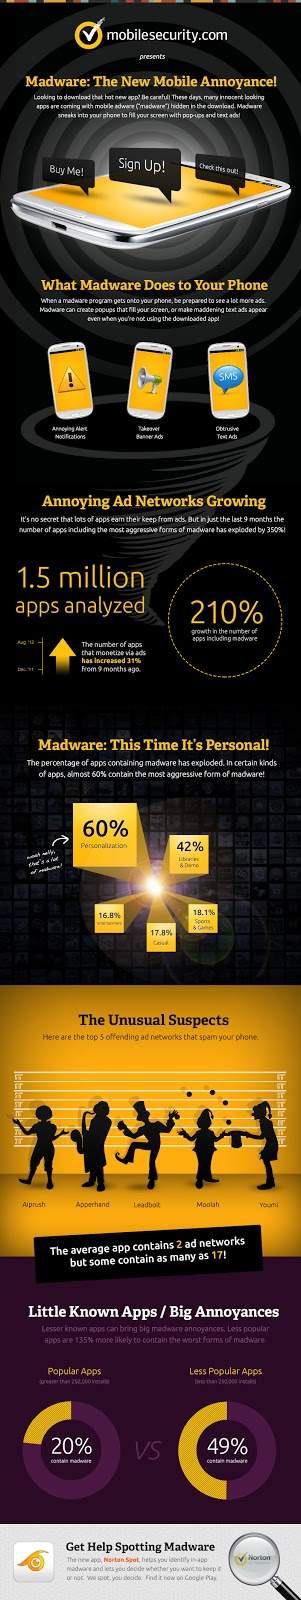 Madware on Androids